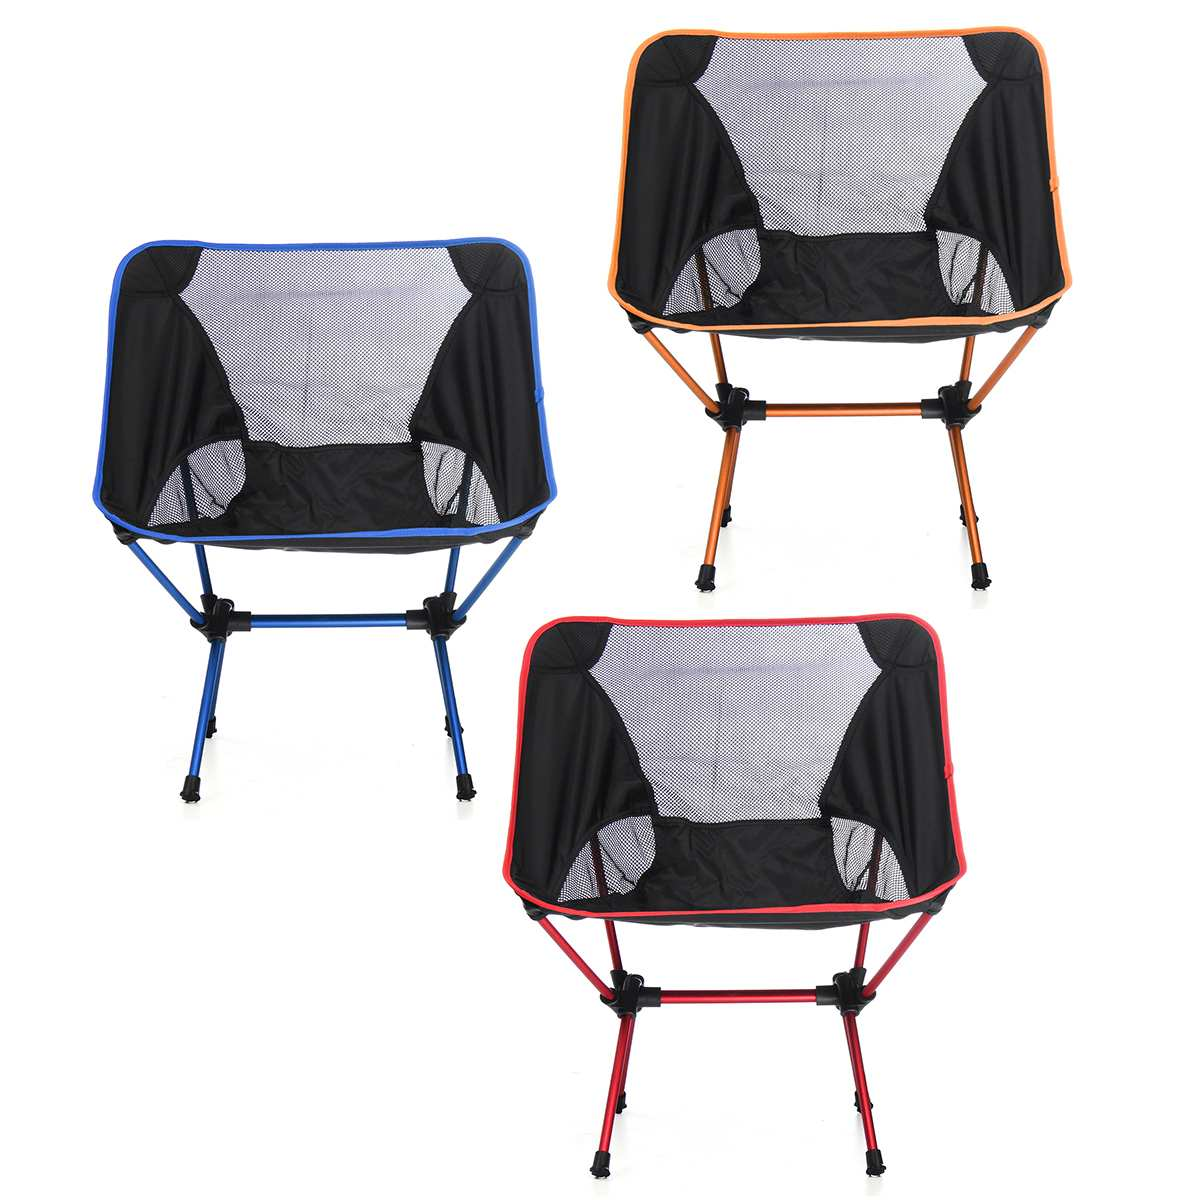 Folding Chair Backpack Portable Folding Camping Stool Foldable Fishing Chair Seat With Backpack For Fishing Picnic Bbq Cycling Hiking